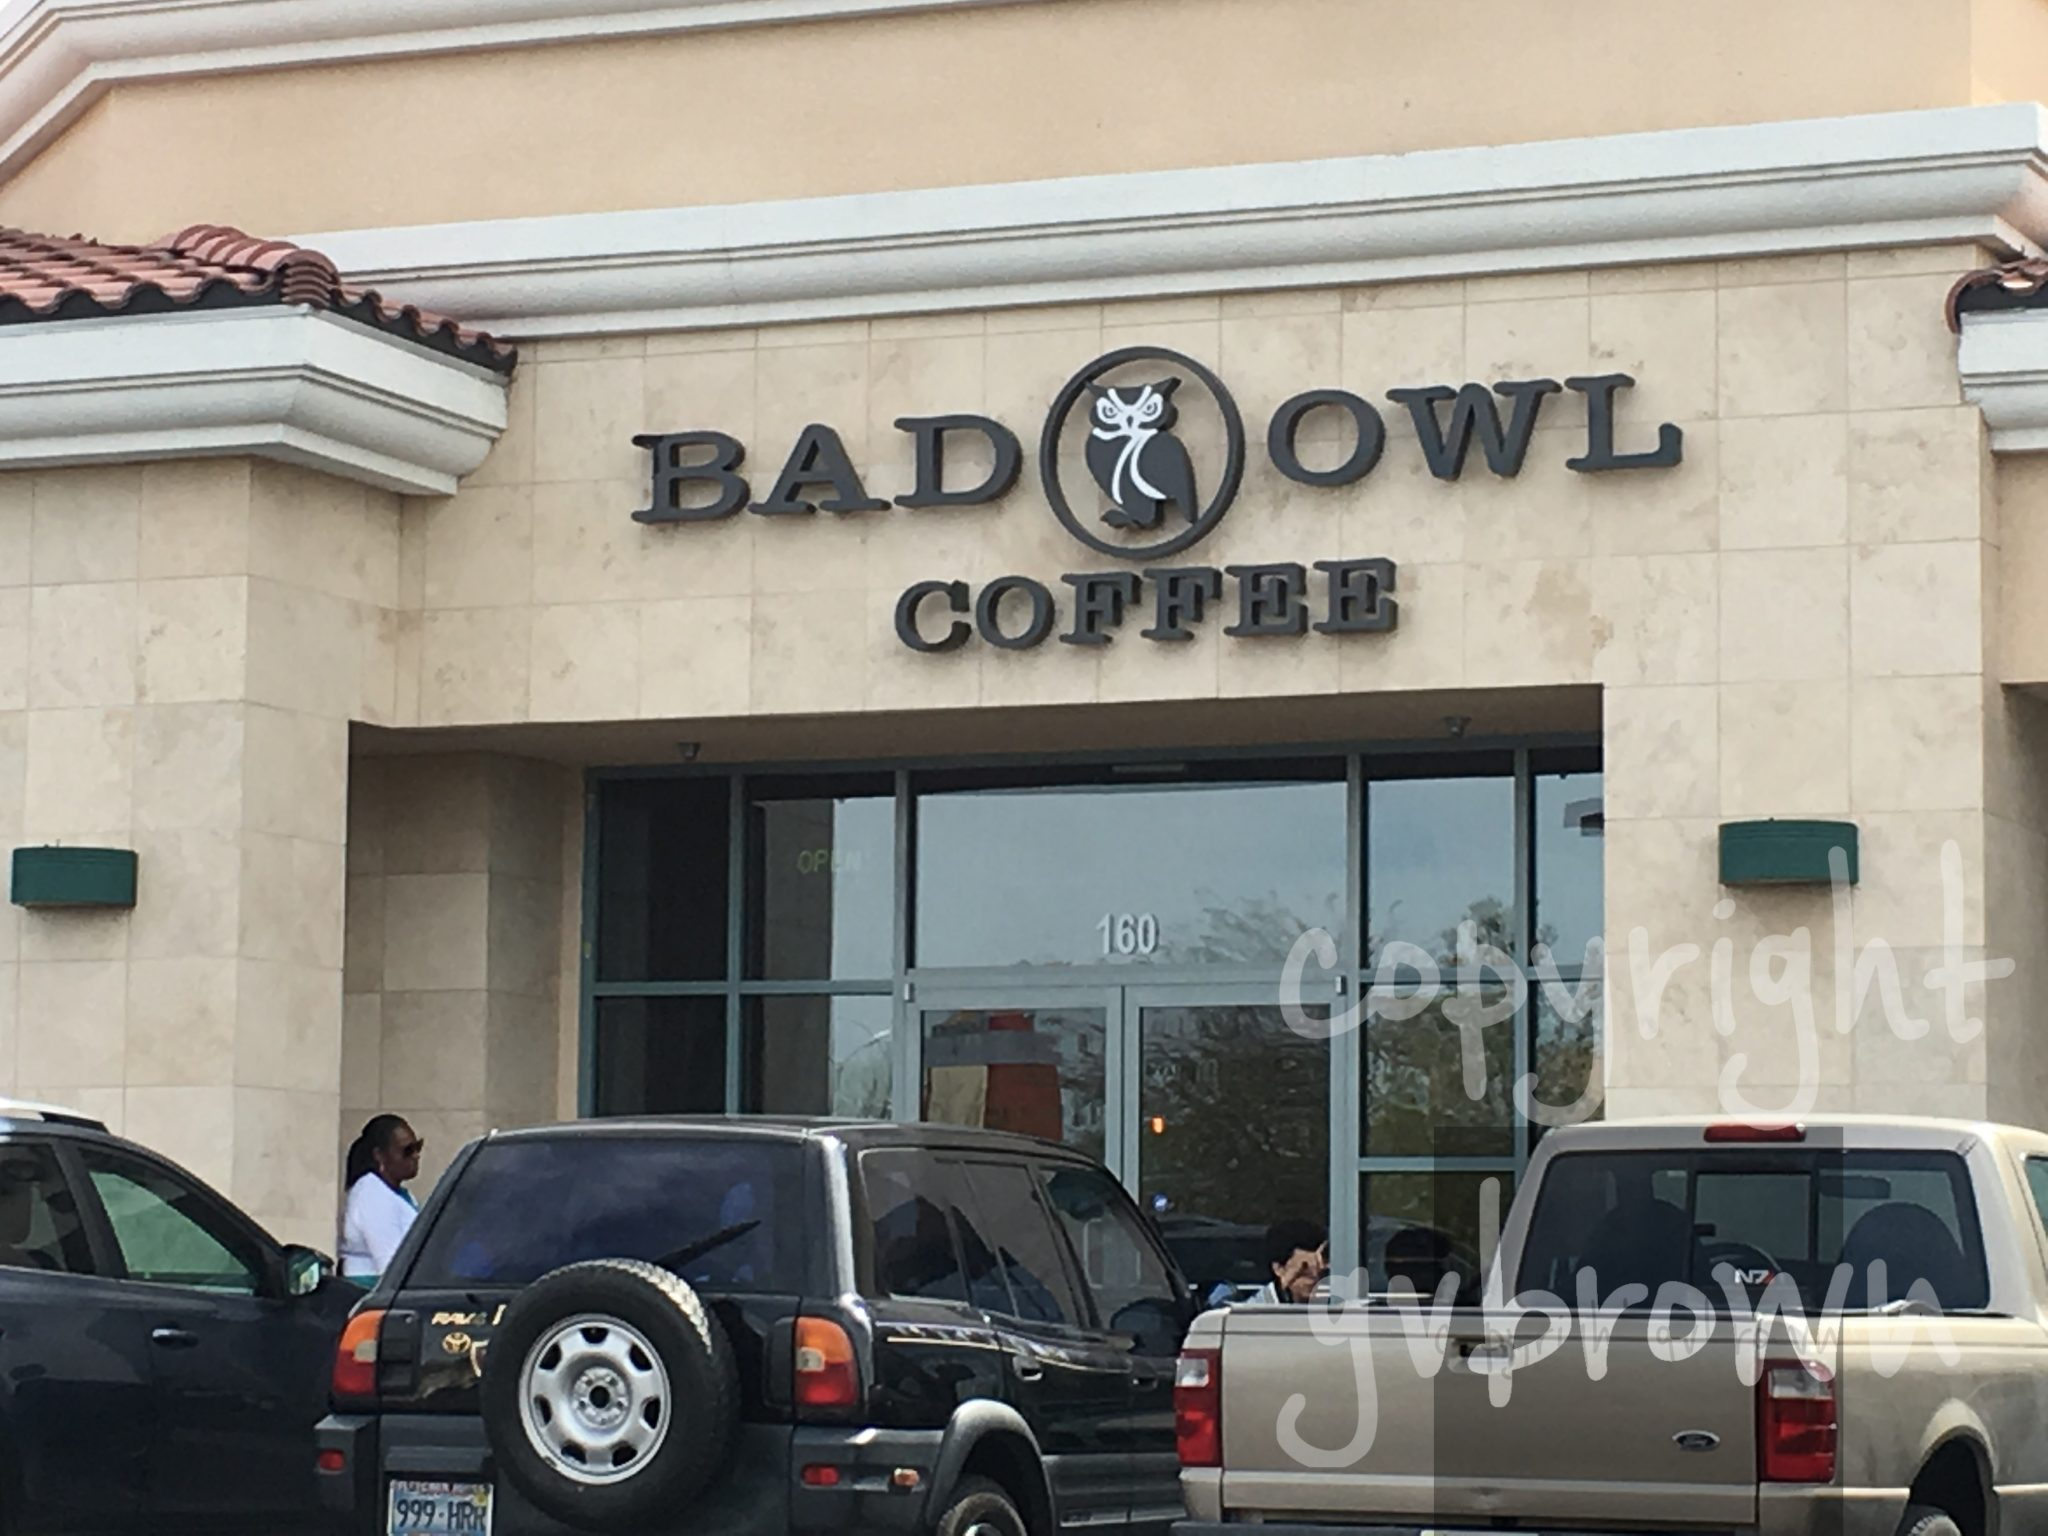 This Muggle Thinks Bad Owl Coffee Wasn't So Good